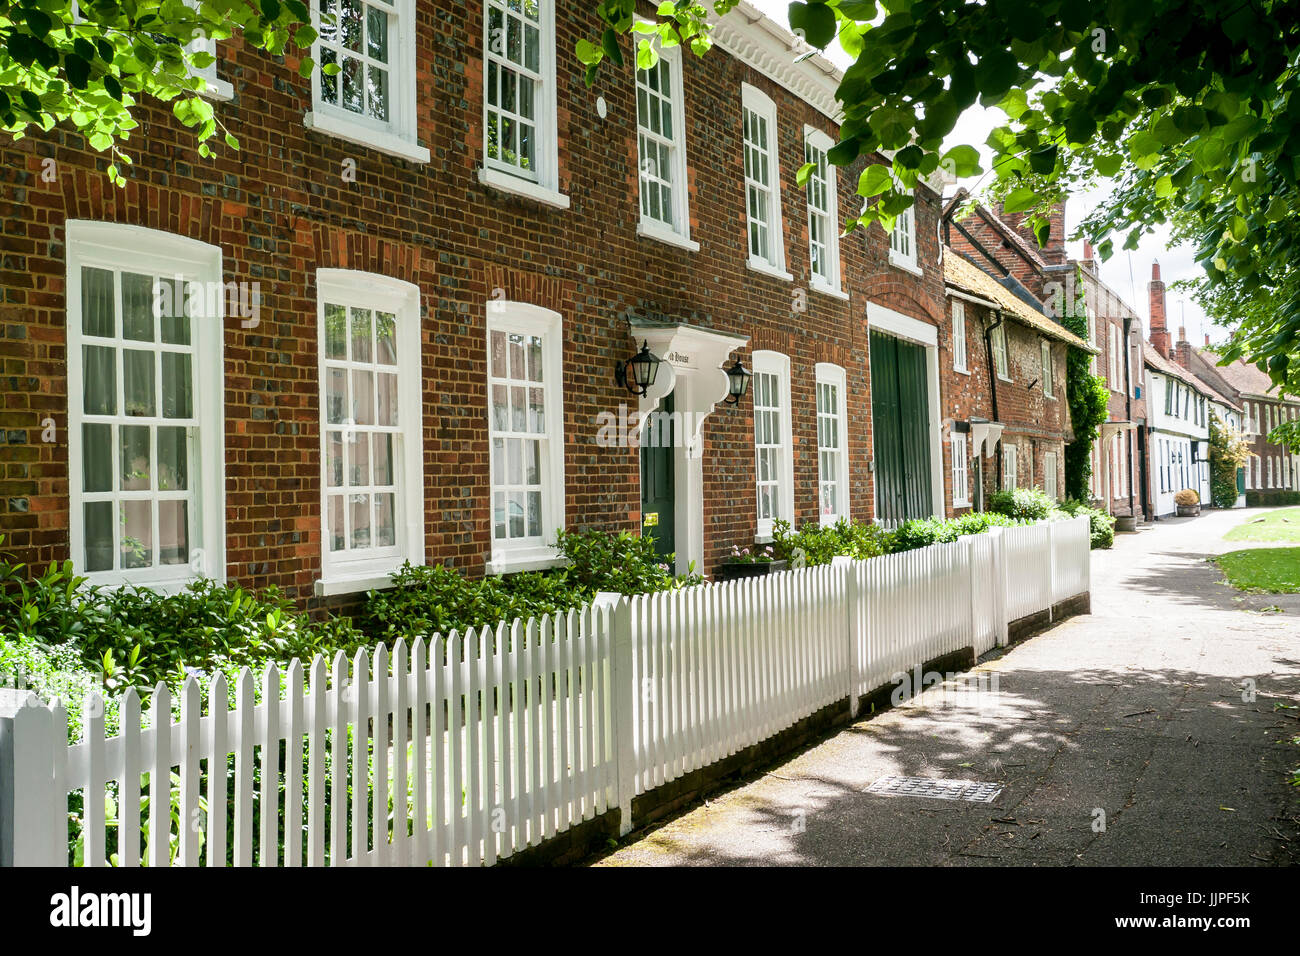 A row of classical georgian terrace houses in the high street of wendover, buckinghamshire, in the chiltern hills, - Stock Image